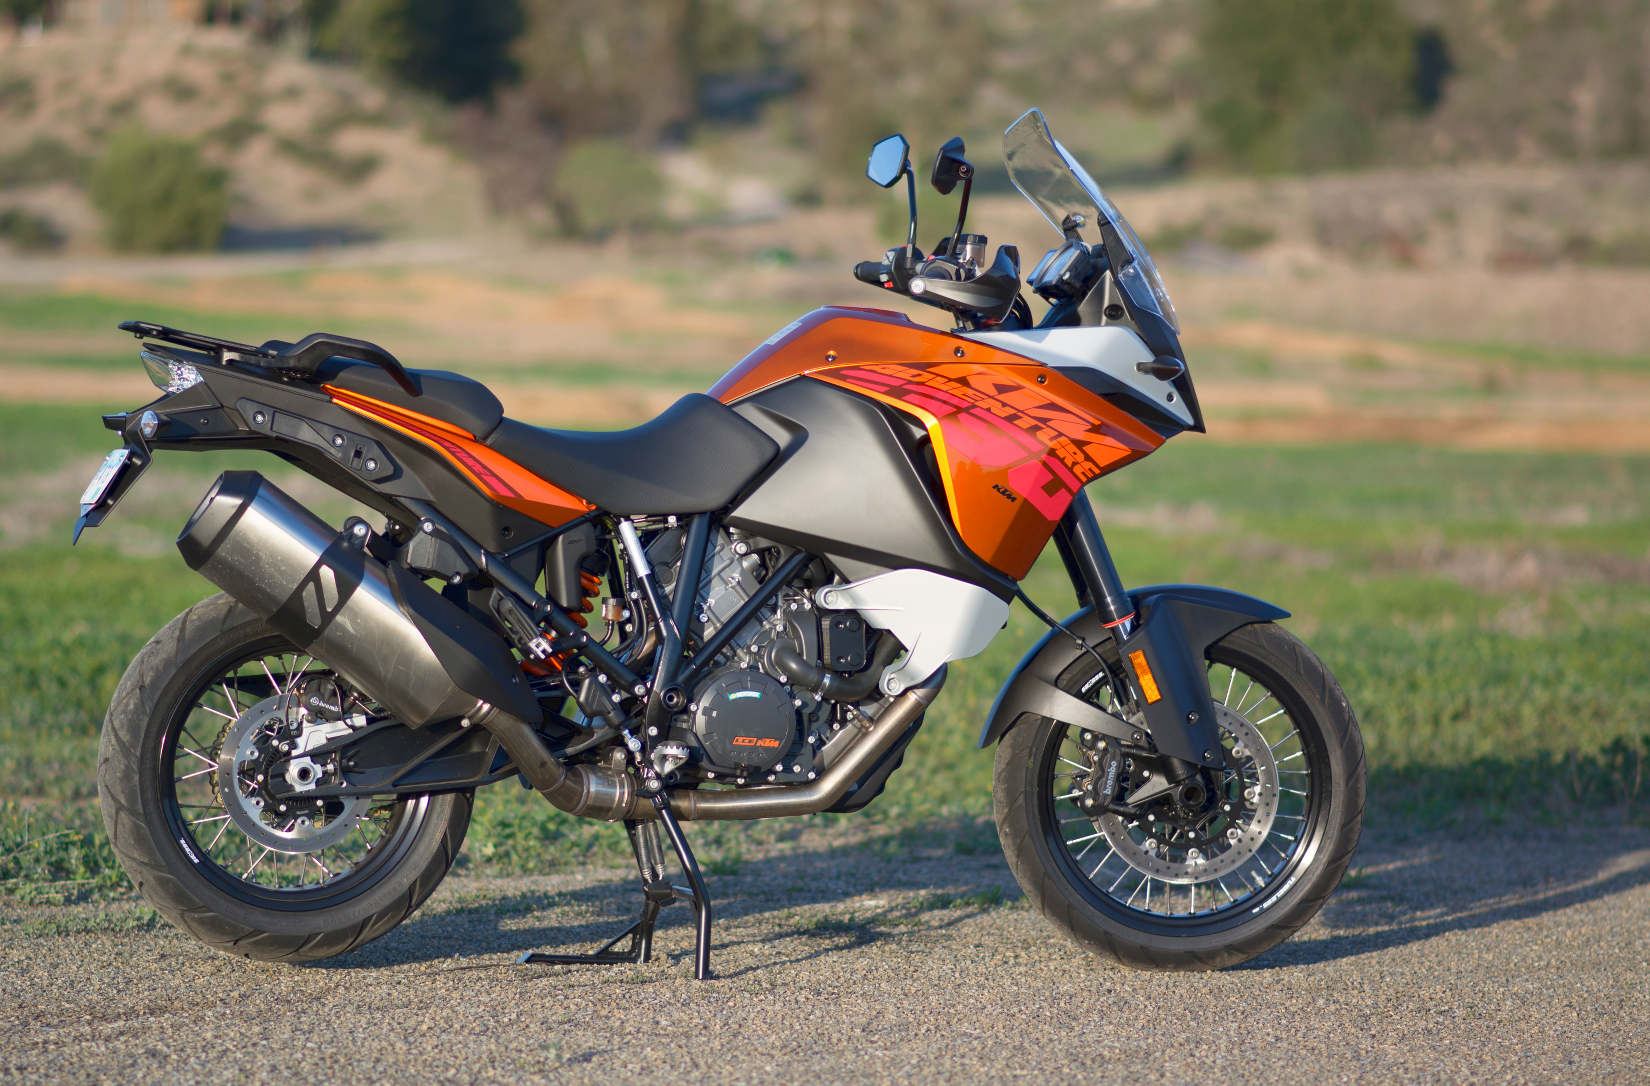 2014 ktm 1190 adventure: md ride review, part 1 « motorcycledaily